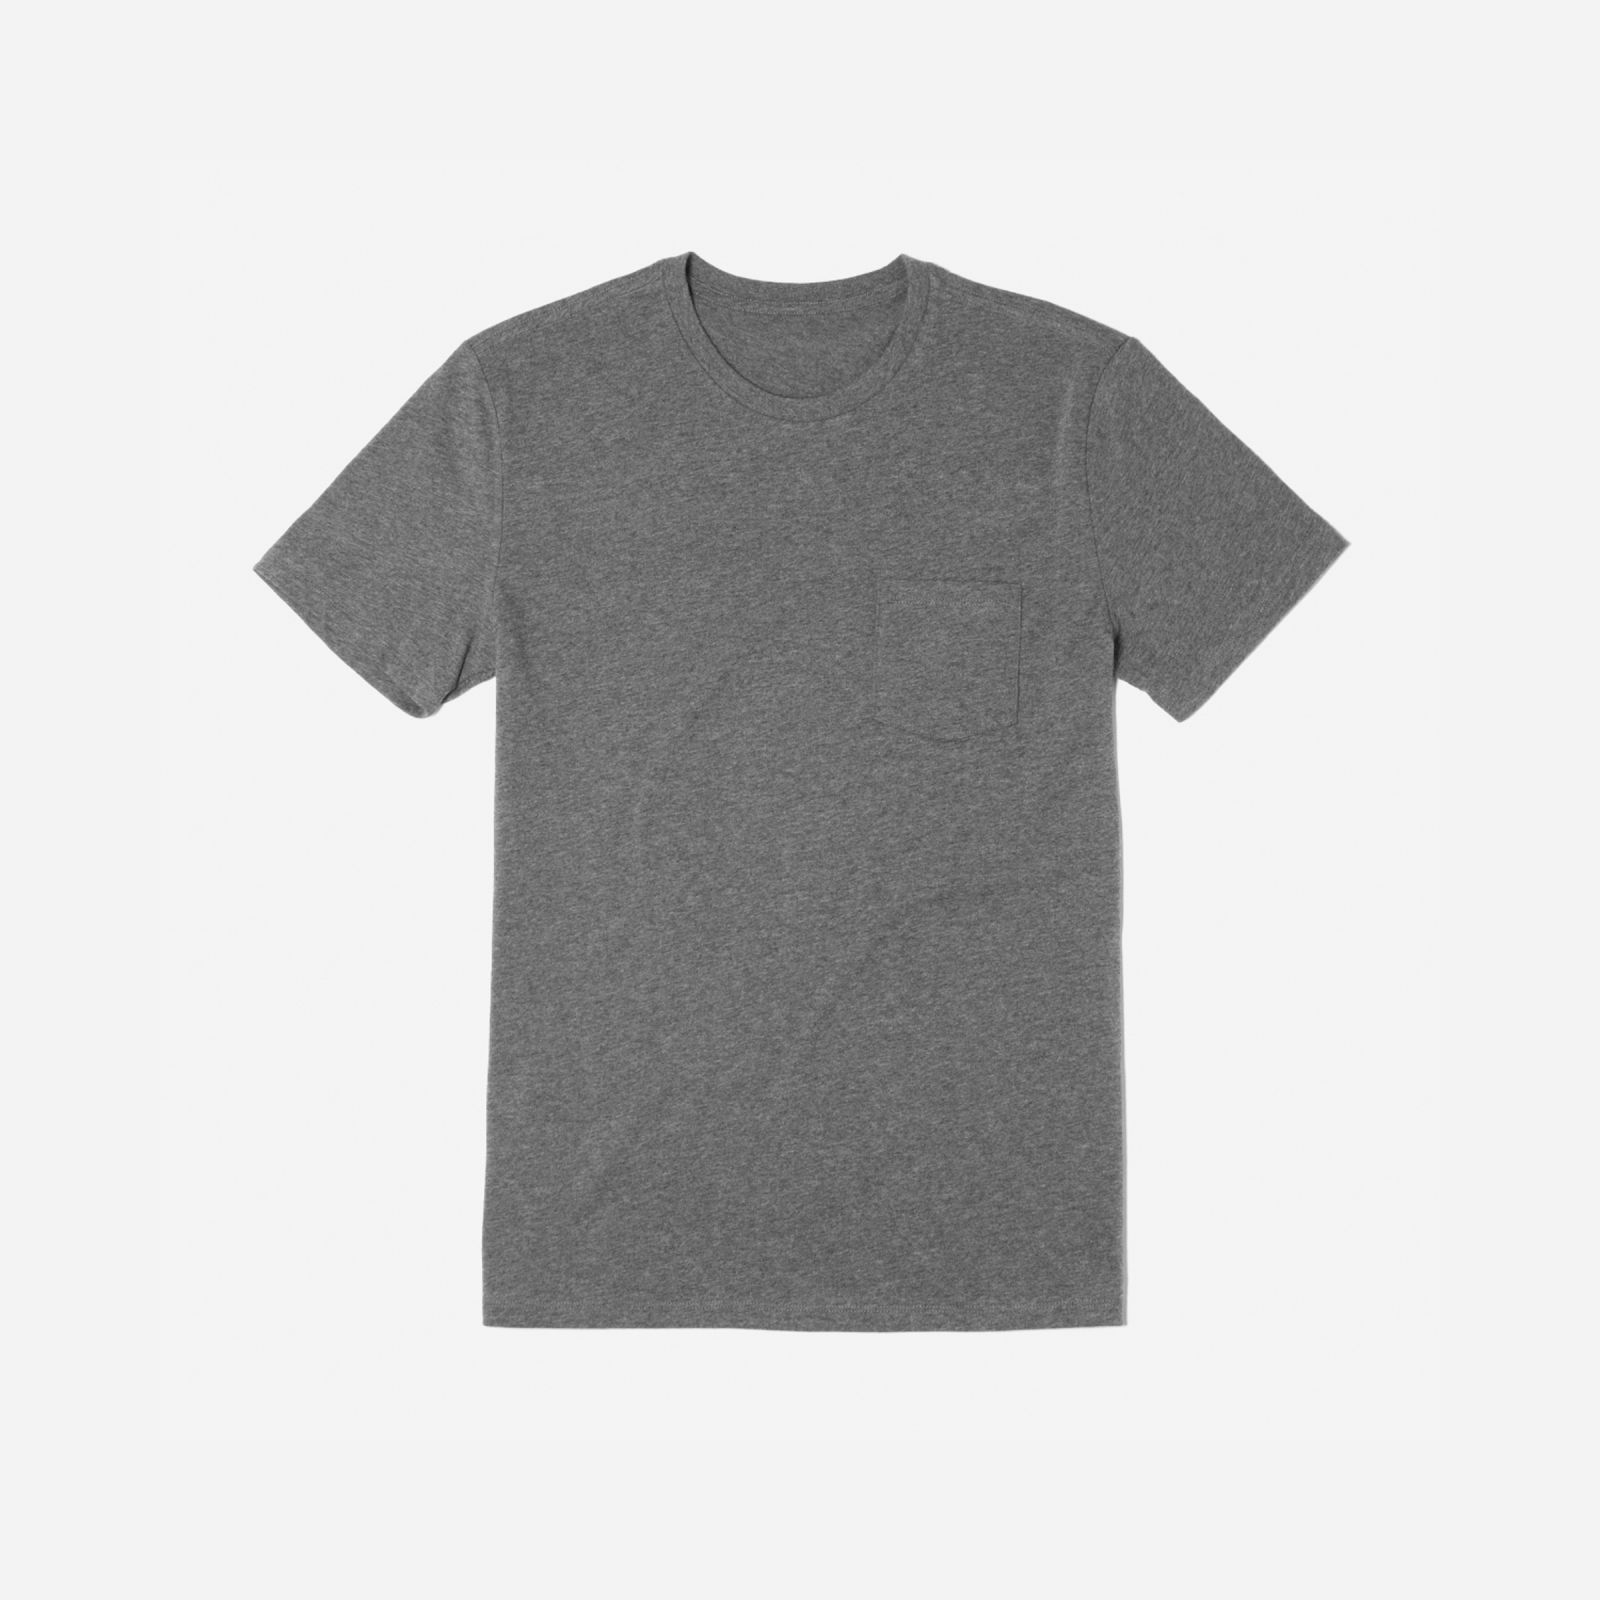 men's cotton pocket t-shirt by everlane in heather charcoal, size xs